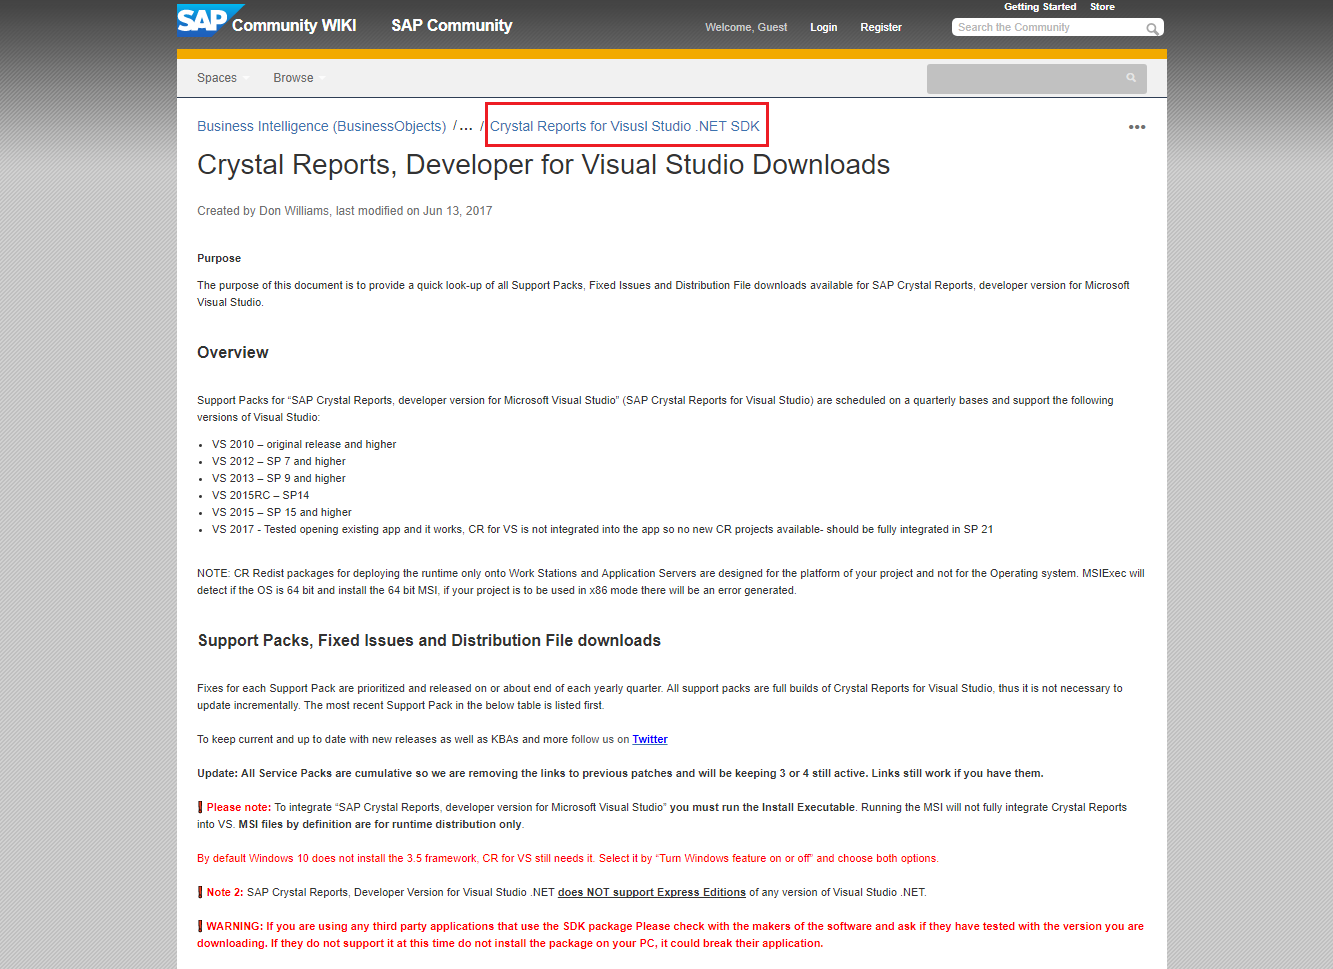 sap crystal reports for visual studio 2013 documentation